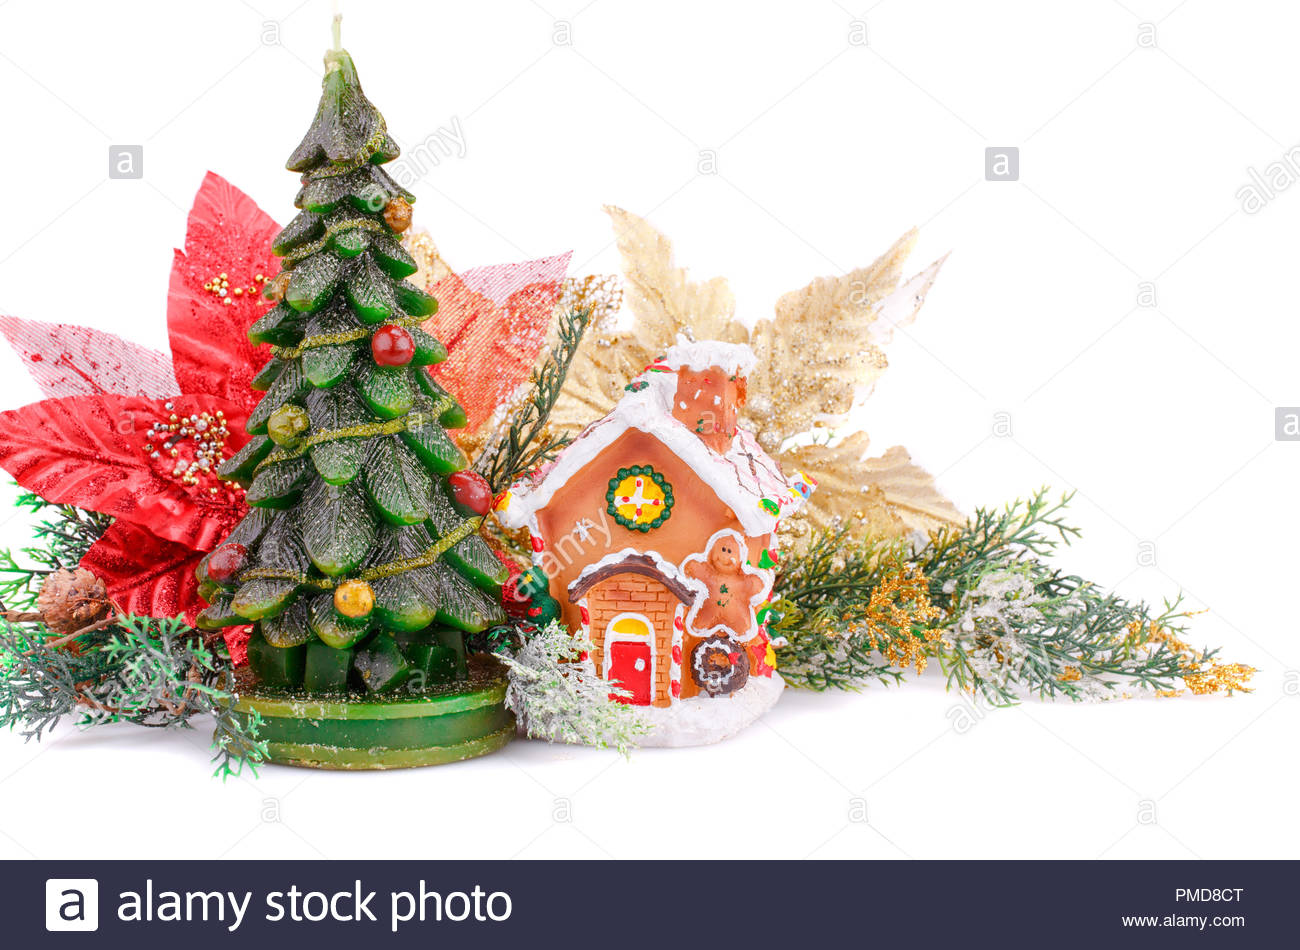 Fir tree candle toy house and holly berry flowers on white 1300x950